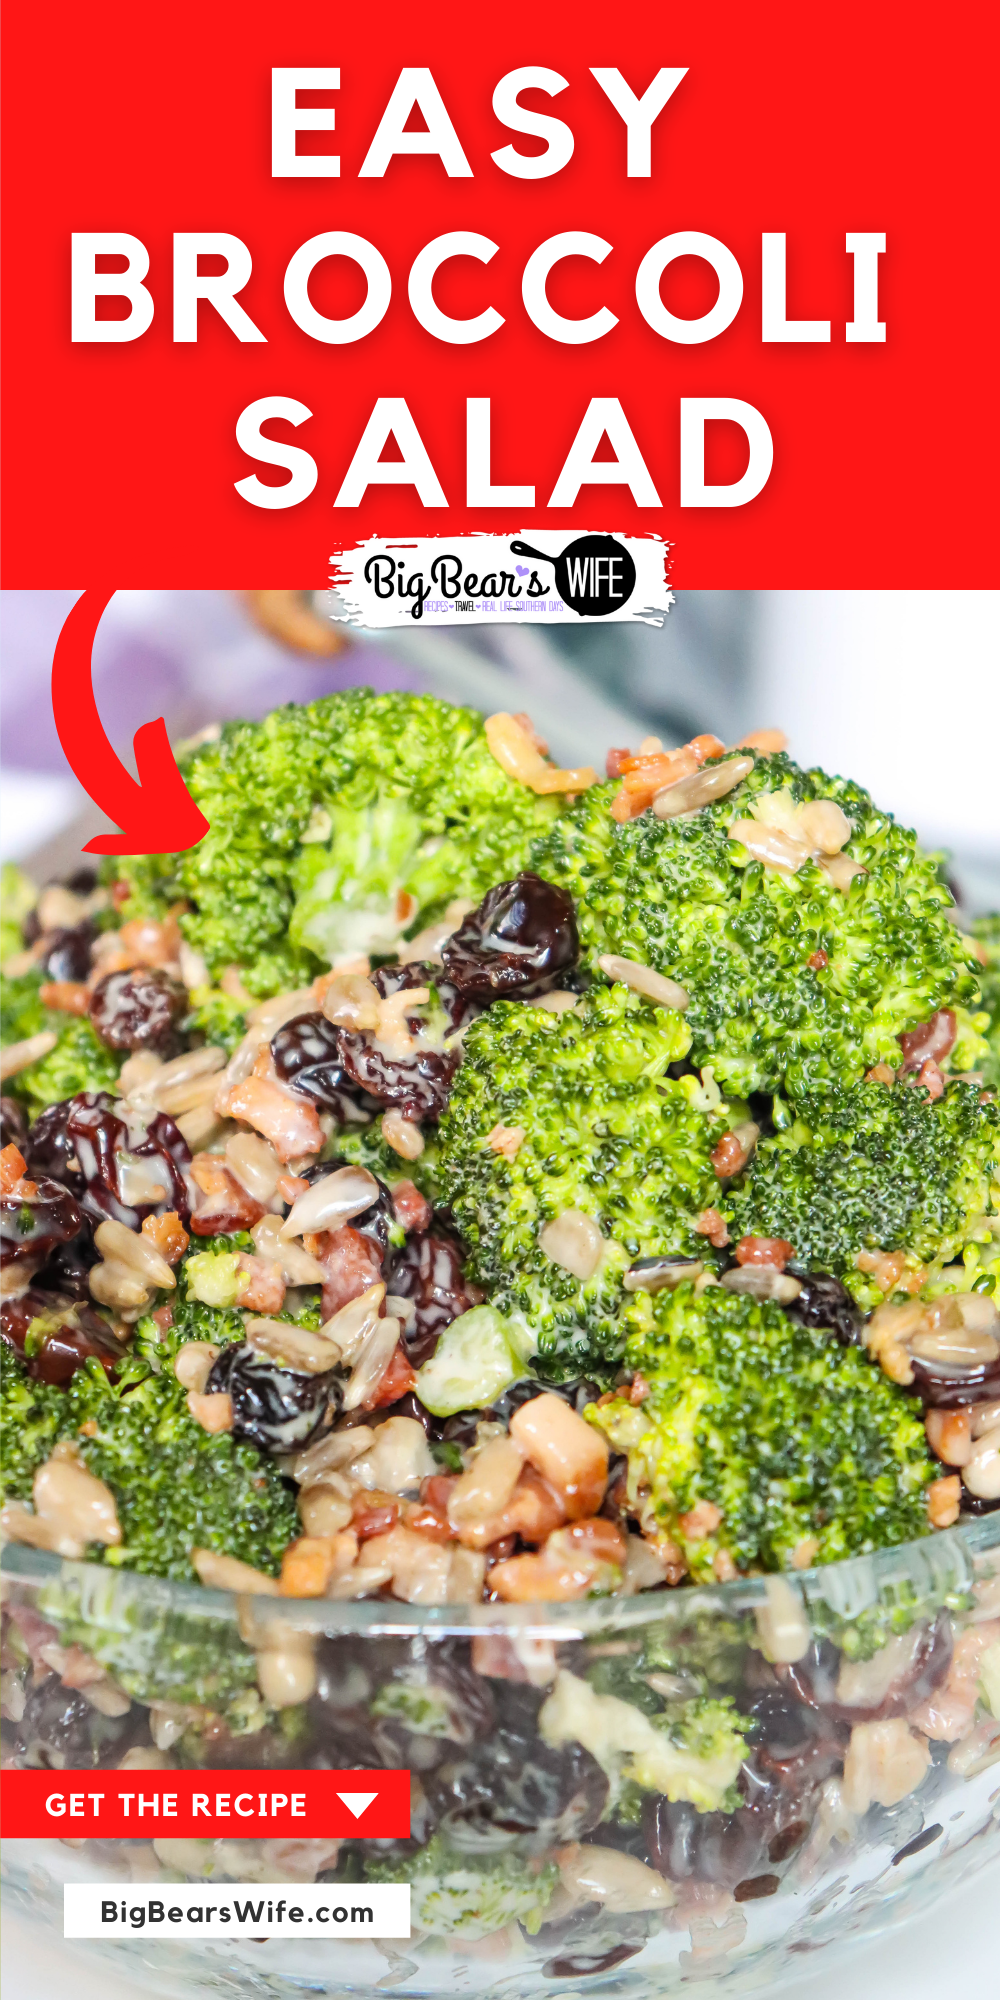 A perfectly Easy Broccoli Salad that's perfect as a side dish, great for picnics and perfect for cookouts! This make-ahead side dish is mixtures of fresh broccoli, sunflower seeds, raisins and bacon bits that has been tossed in a sweet southern dressing and chilled! via @bigbearswife